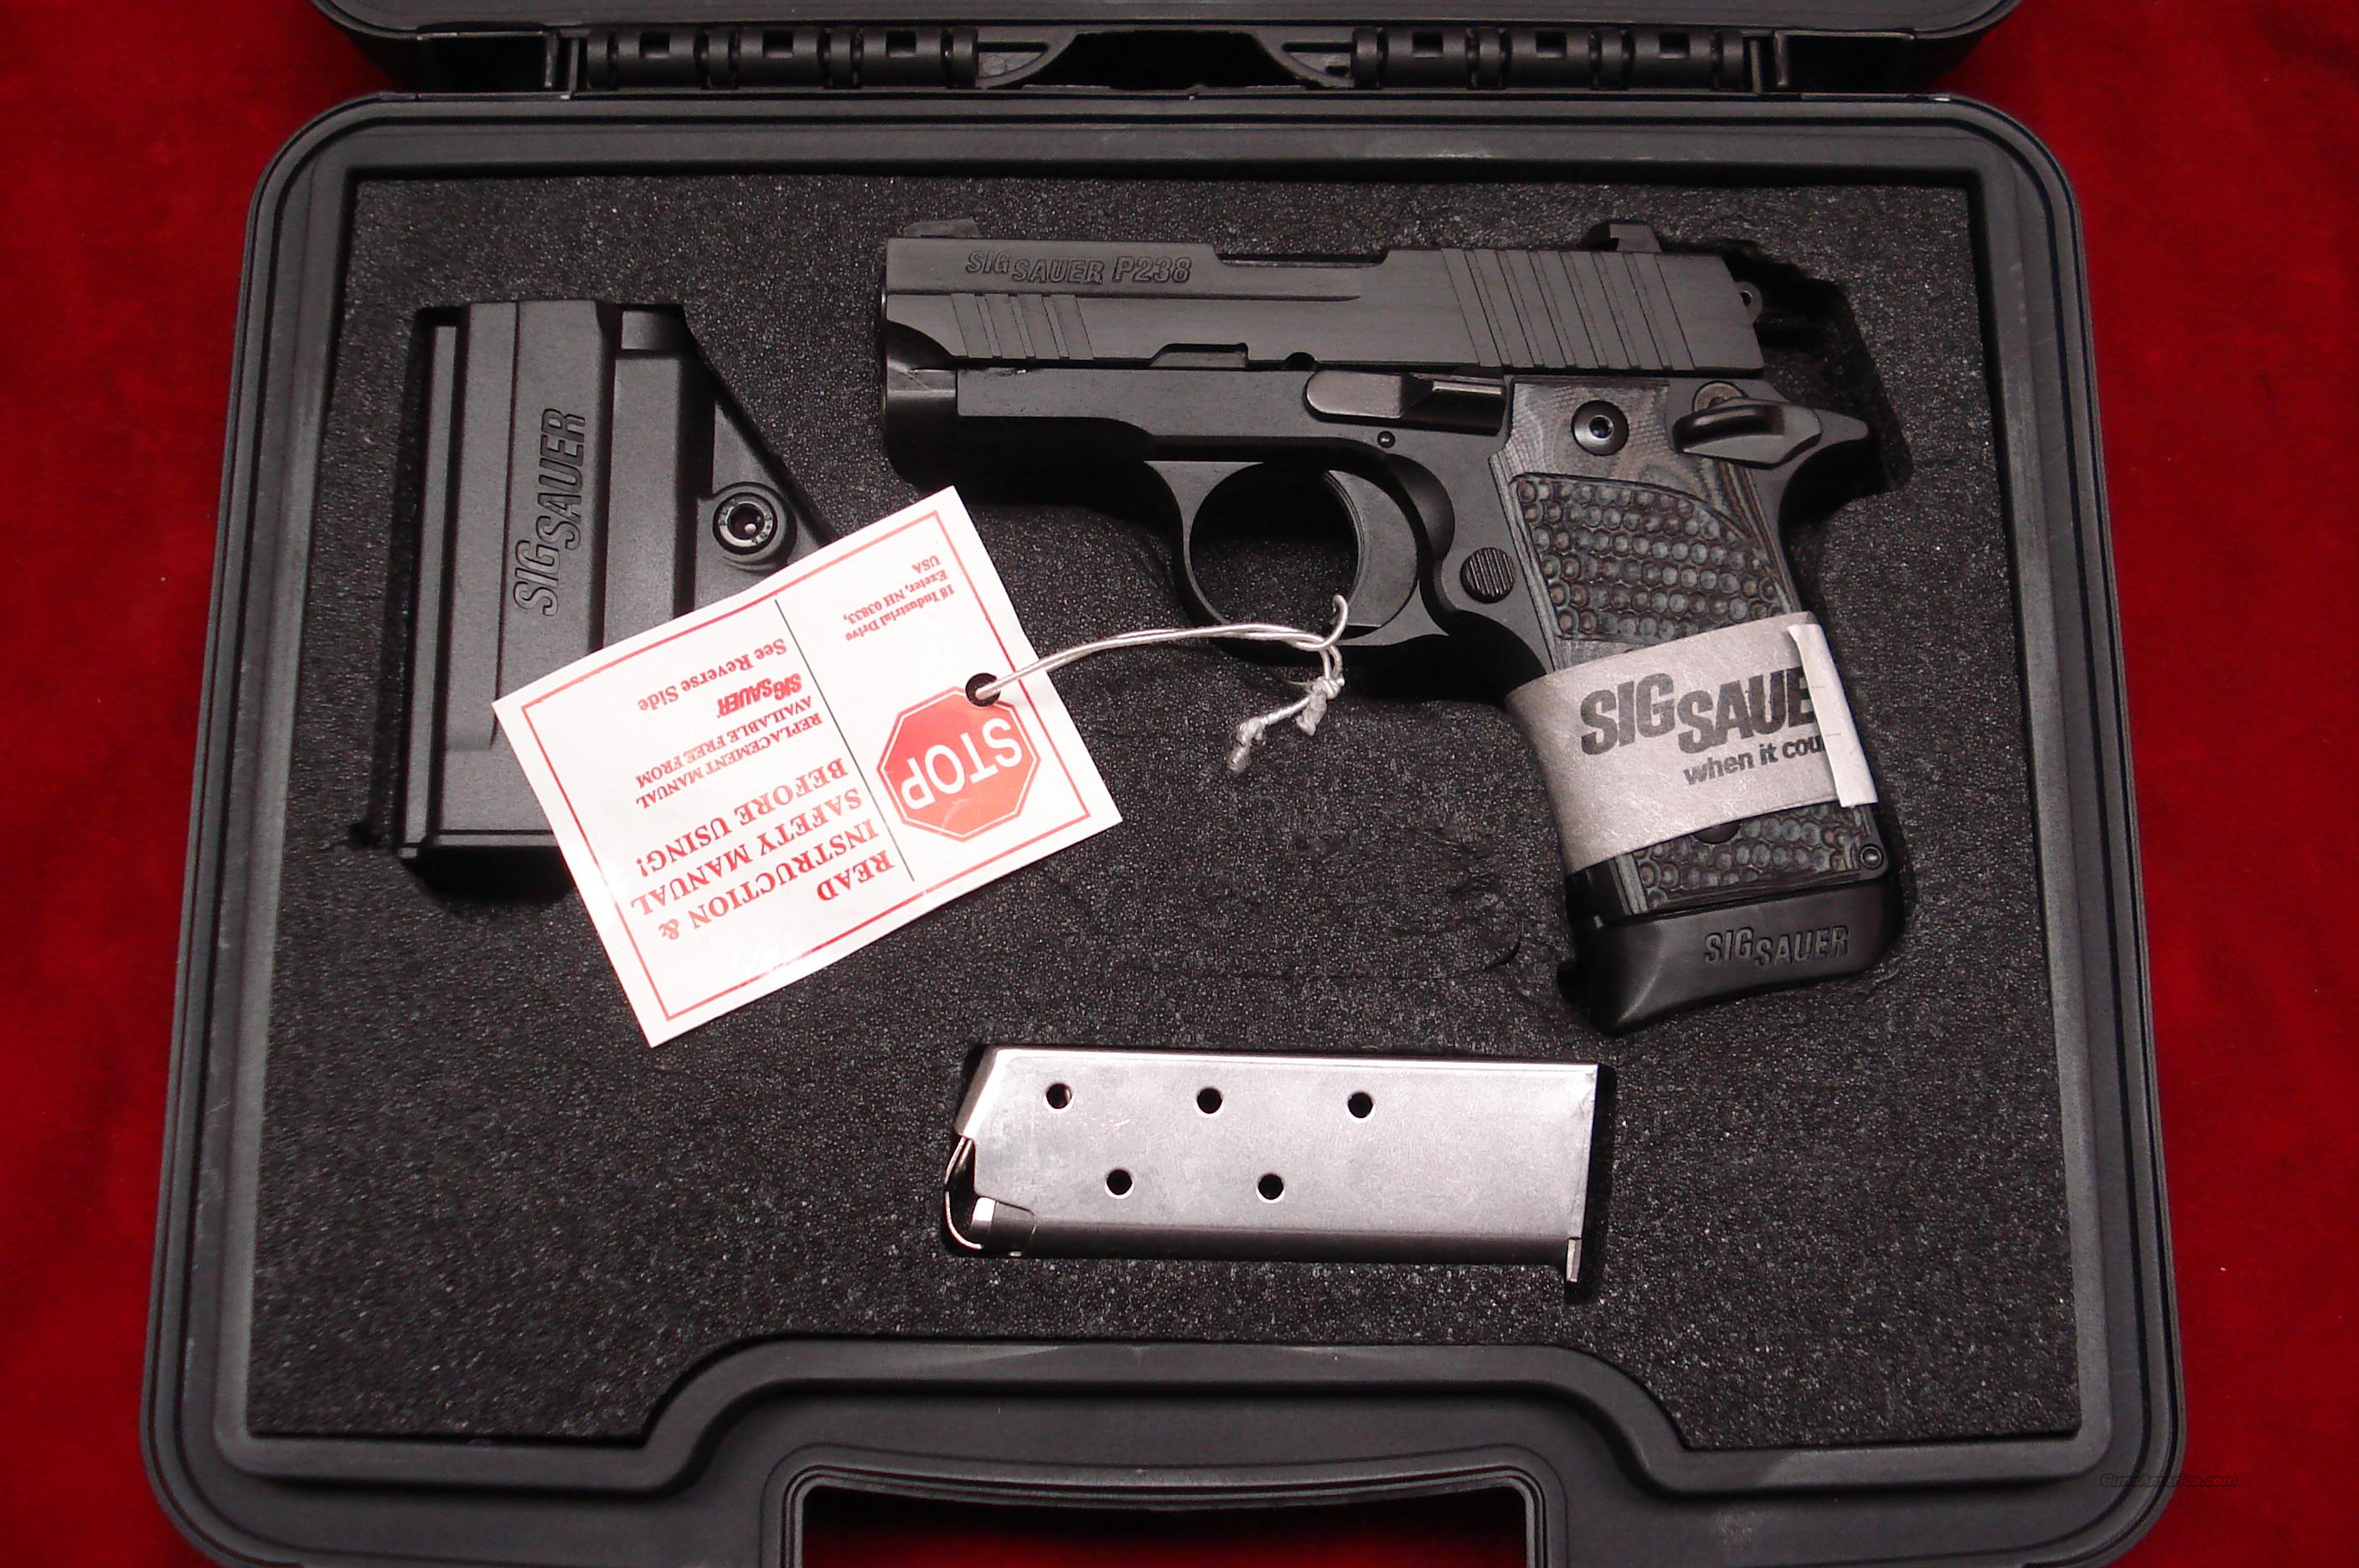 SIG SAUER P238 380CAL. W/NIGHT SIGHTS AND G-10 GRIPS NEW  (238-380-XTM-BLKGRY)  Guns > Pistols > Sig - Sauer/Sigarms Pistols > Other